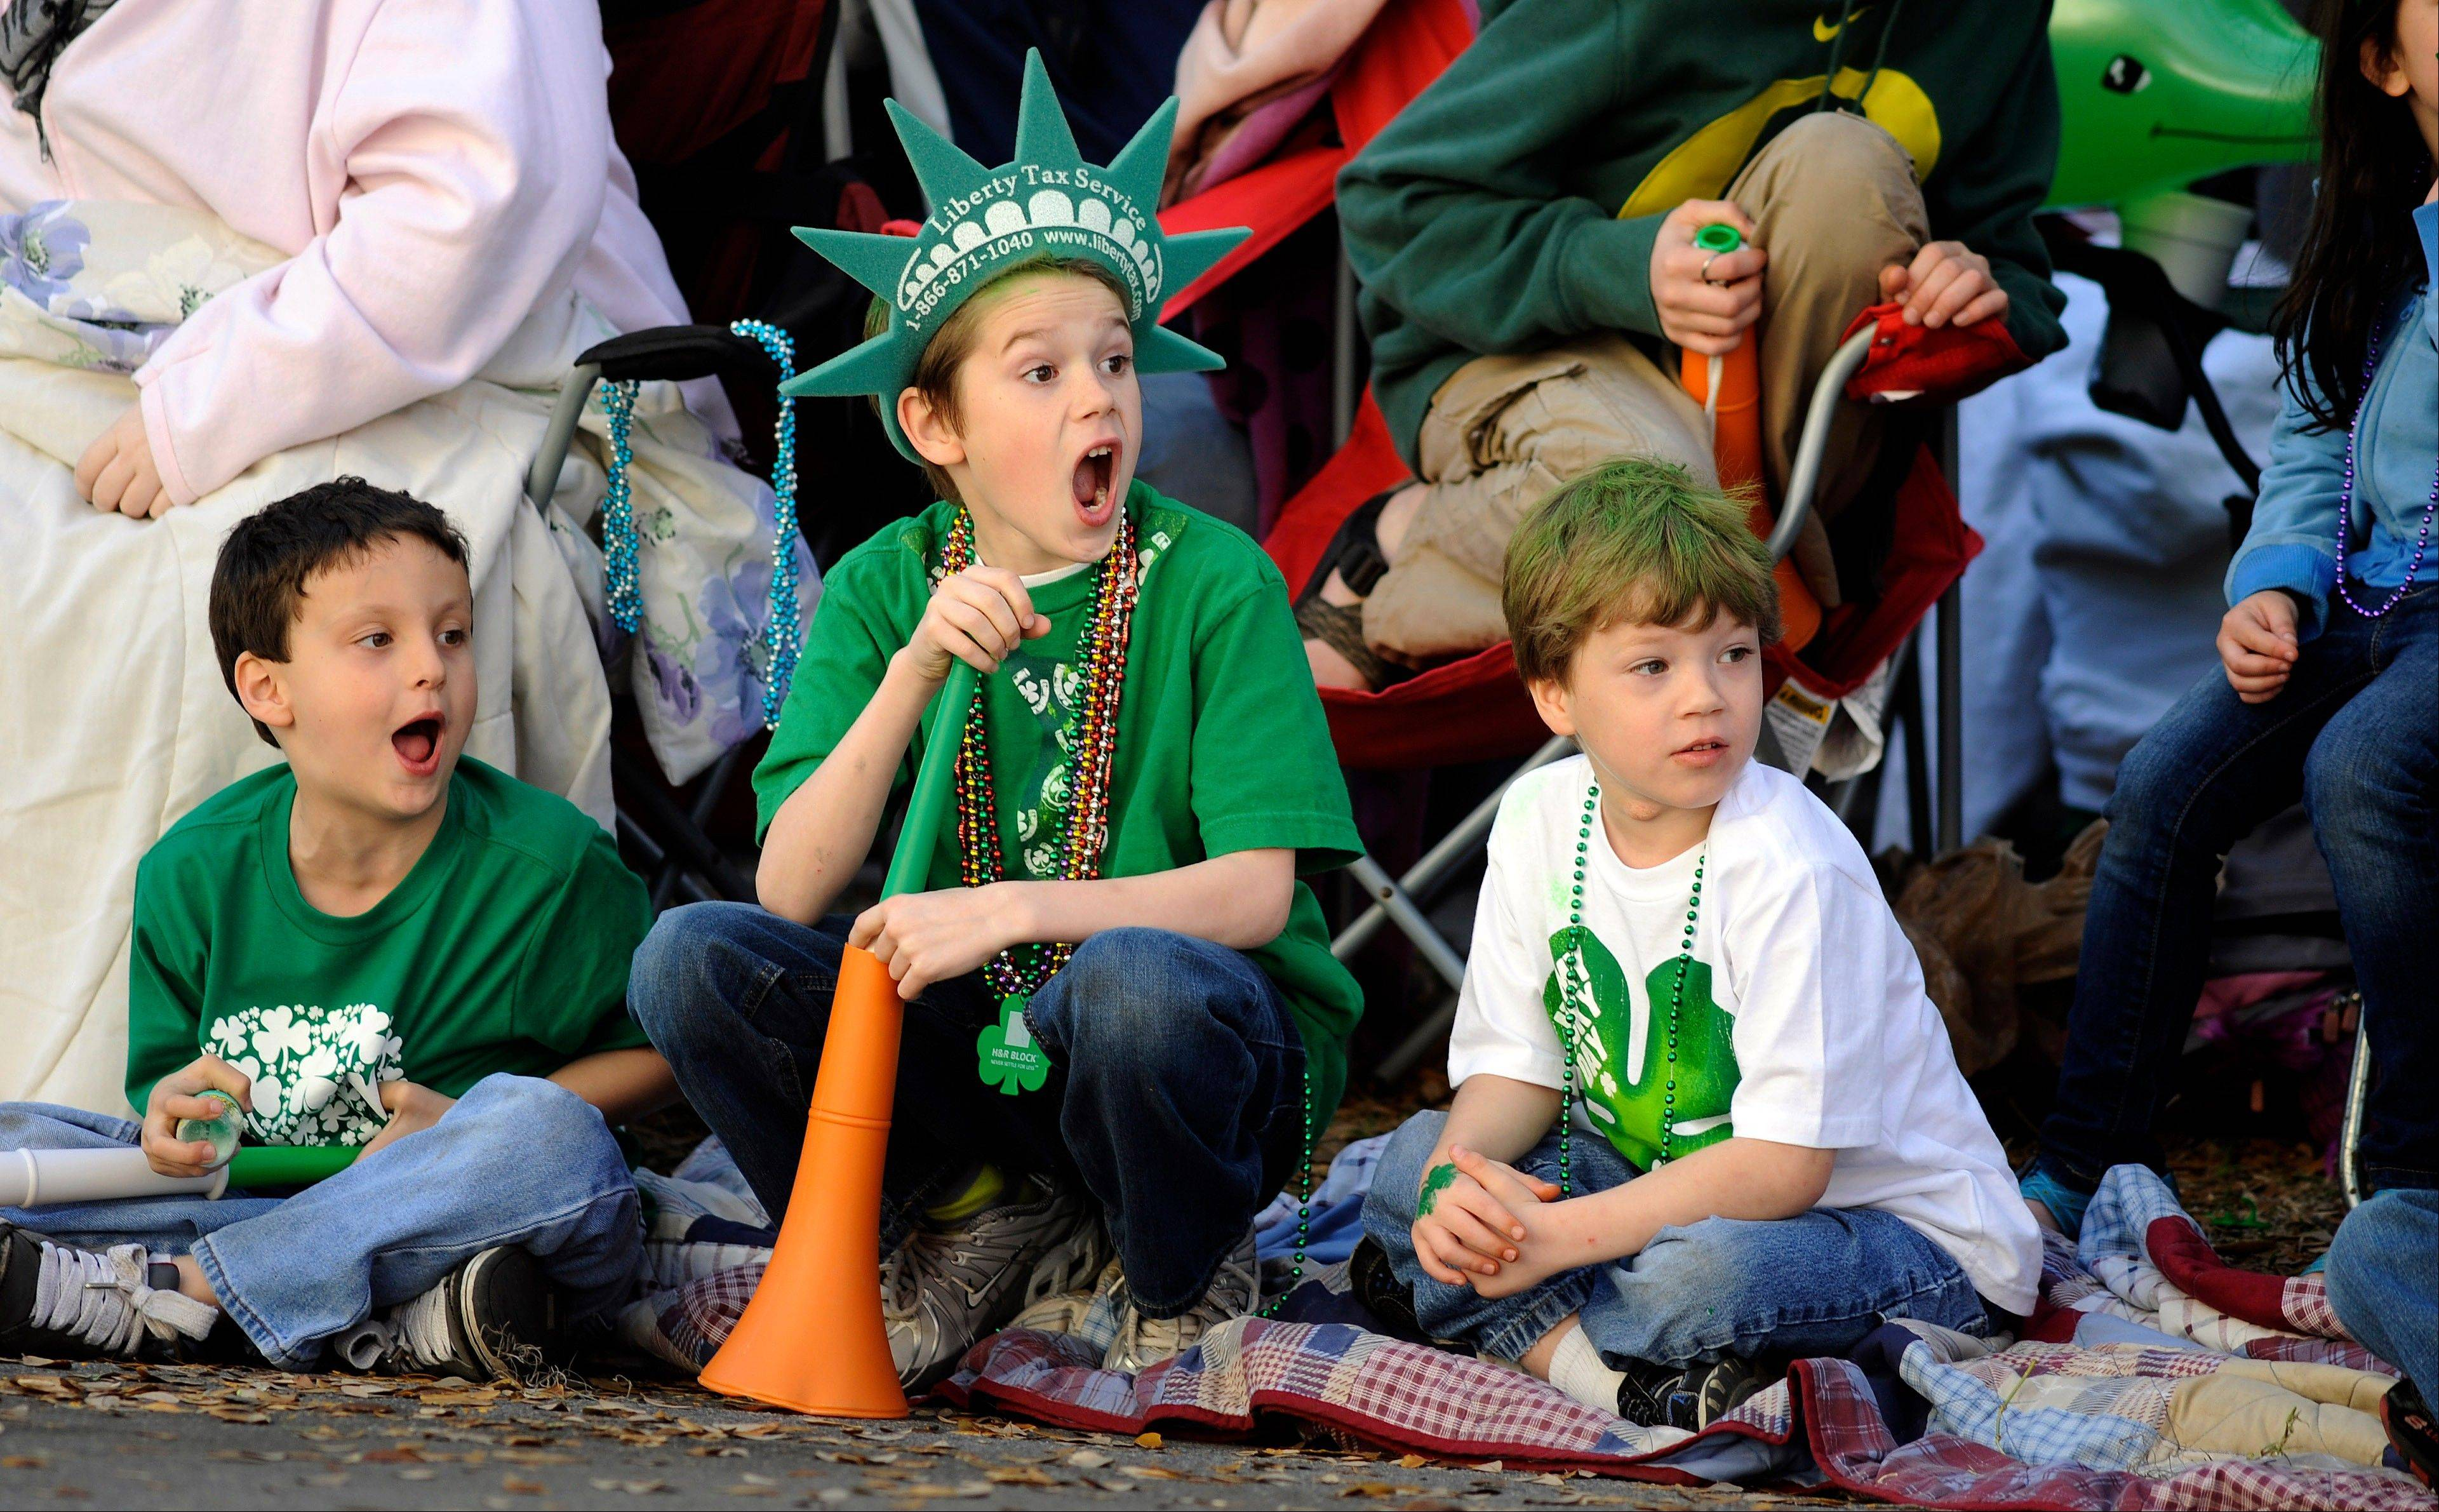 Jacob Tidwell, center, and his friends Donavan Mock, left, and Preston Vasquez react Saturday to a band during Savannahís 189-year-old St. Patrick's Day parade.